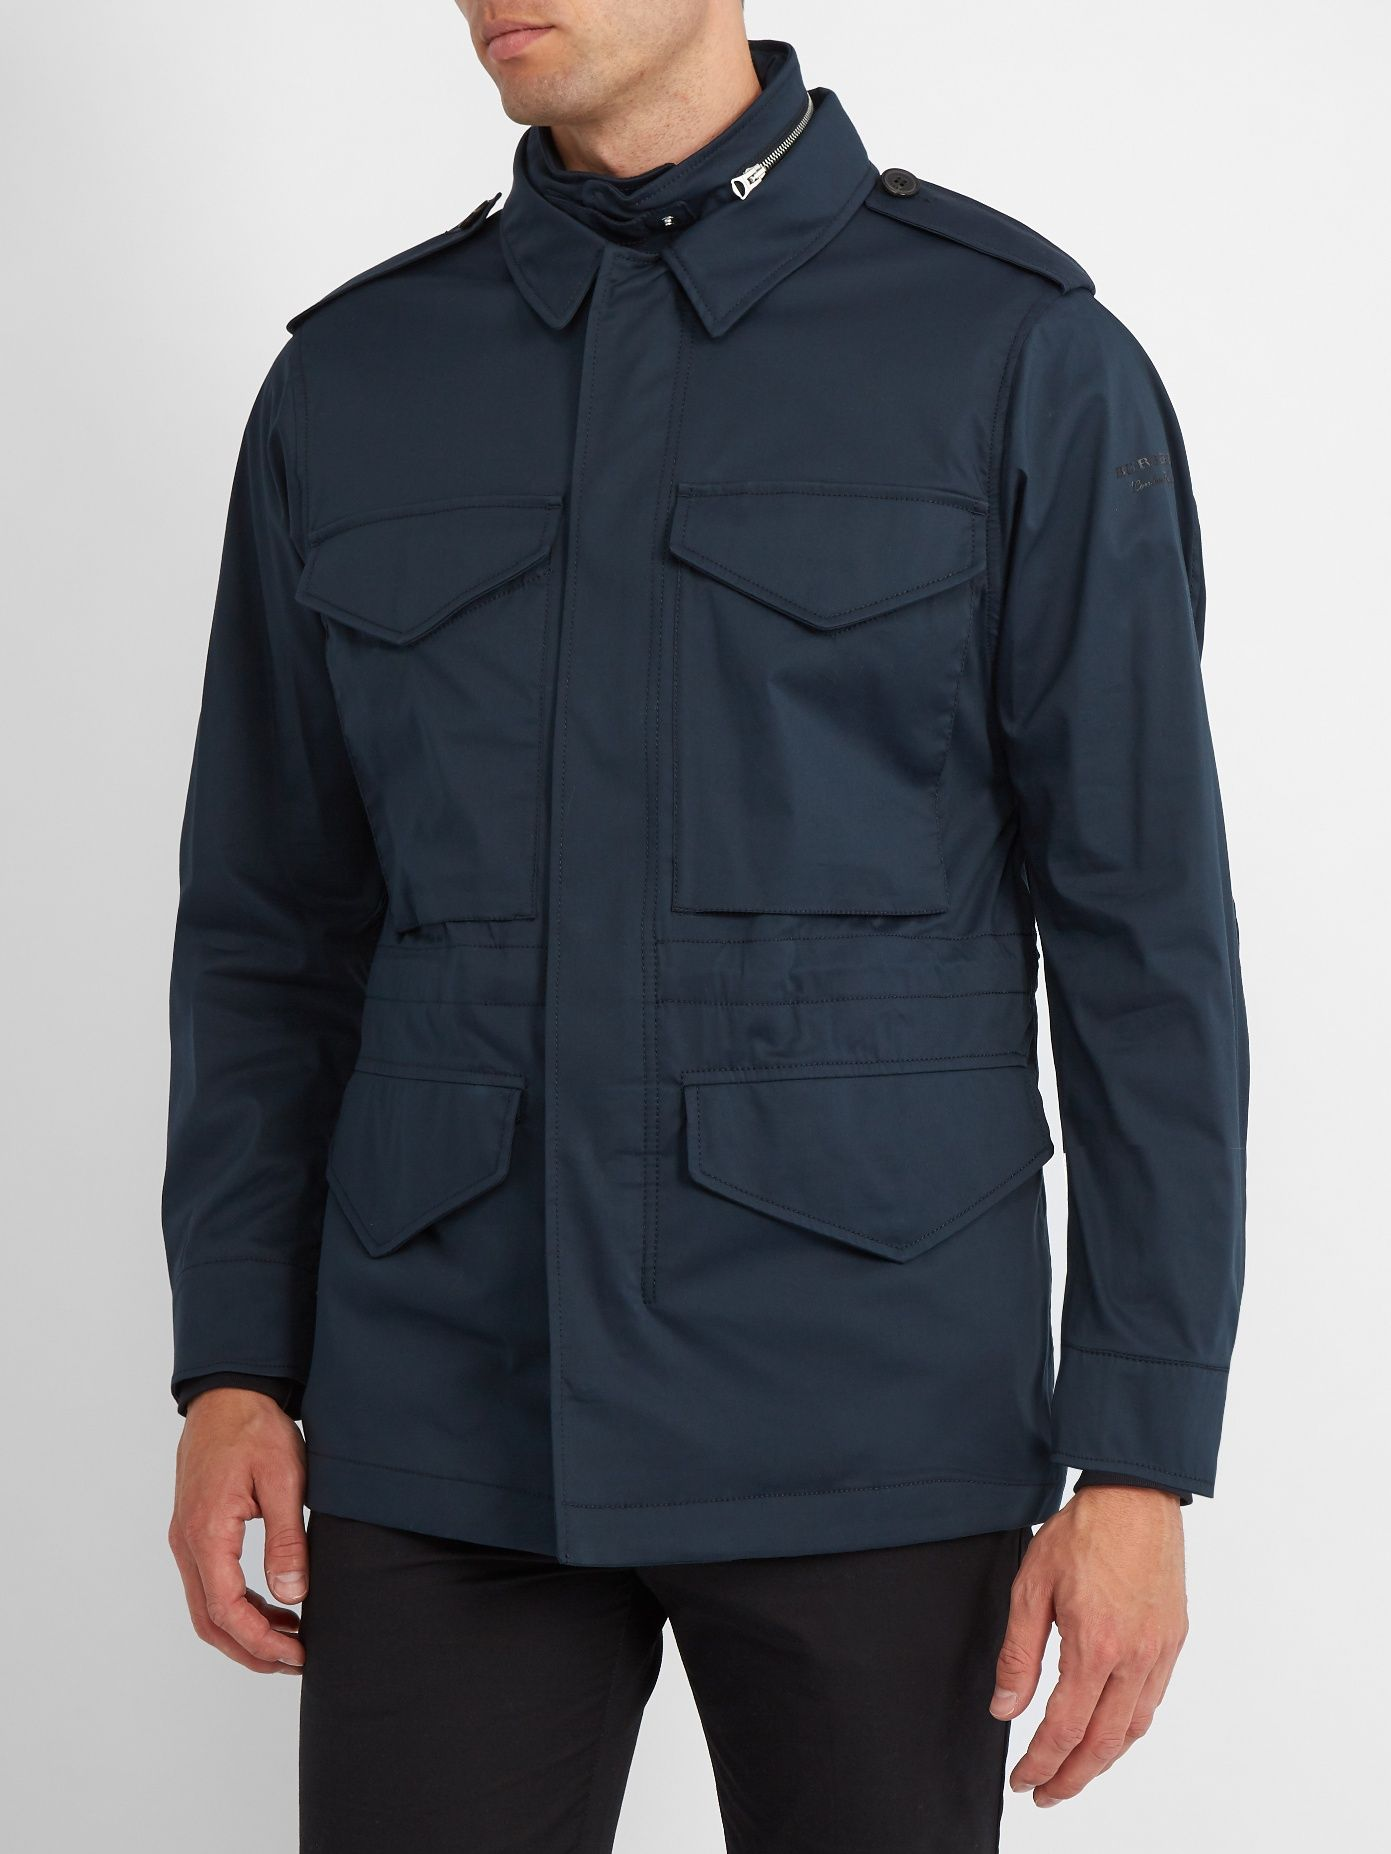 Click here to buy Burberry Oakley field jacket at